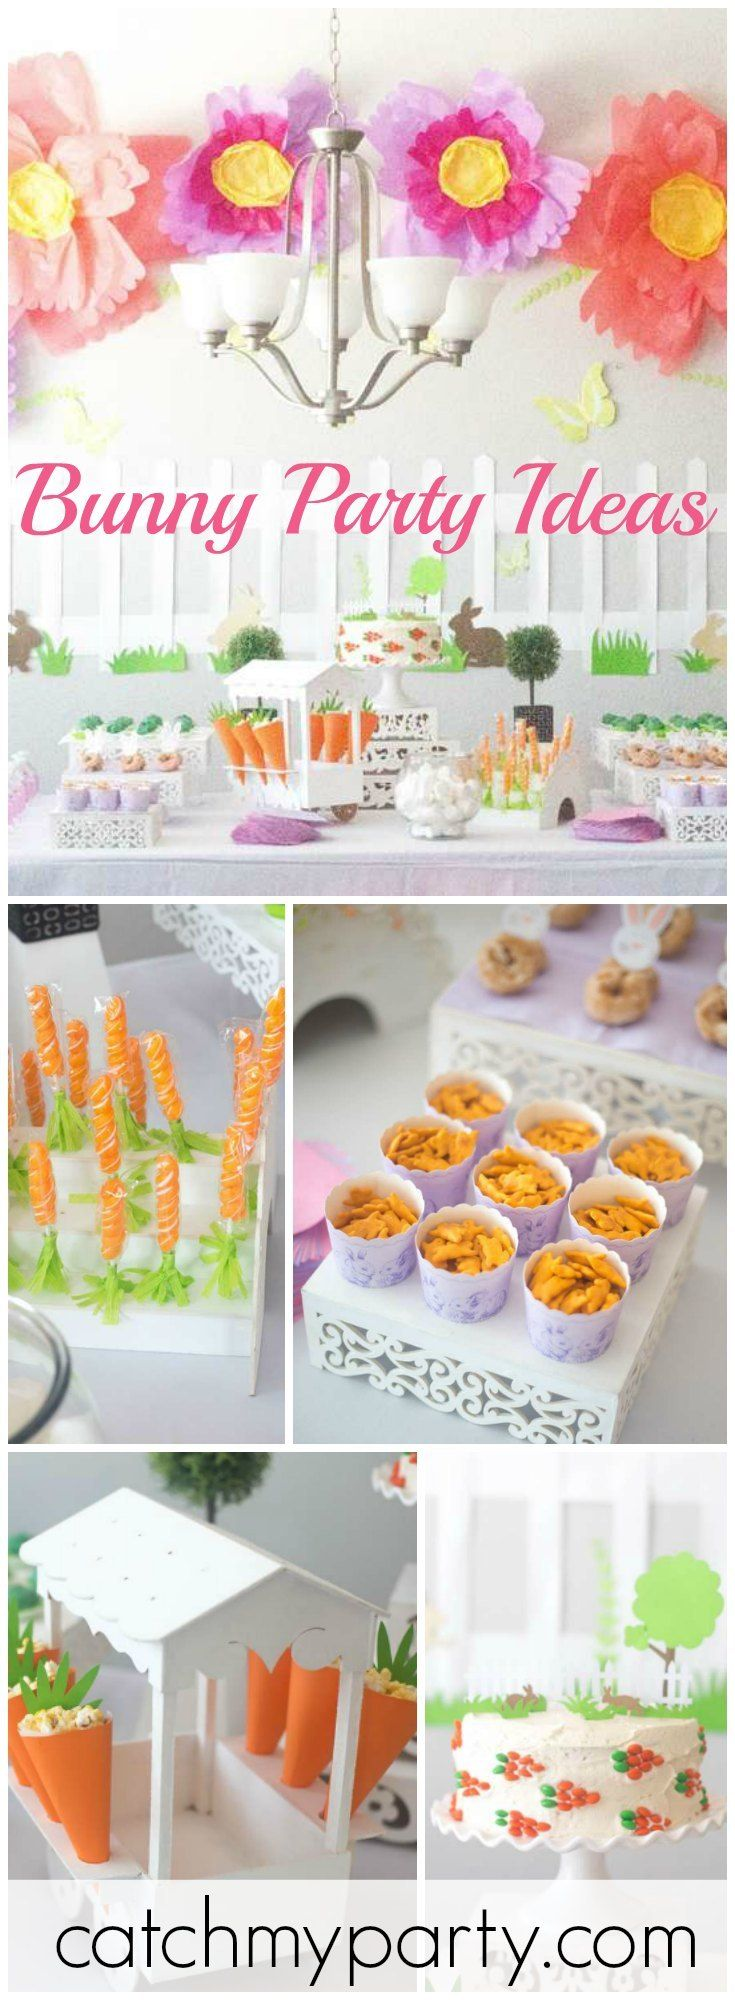 How cute is this bunny birthday for a little girl's party?! See more party ideas at Catchmyparty.com!